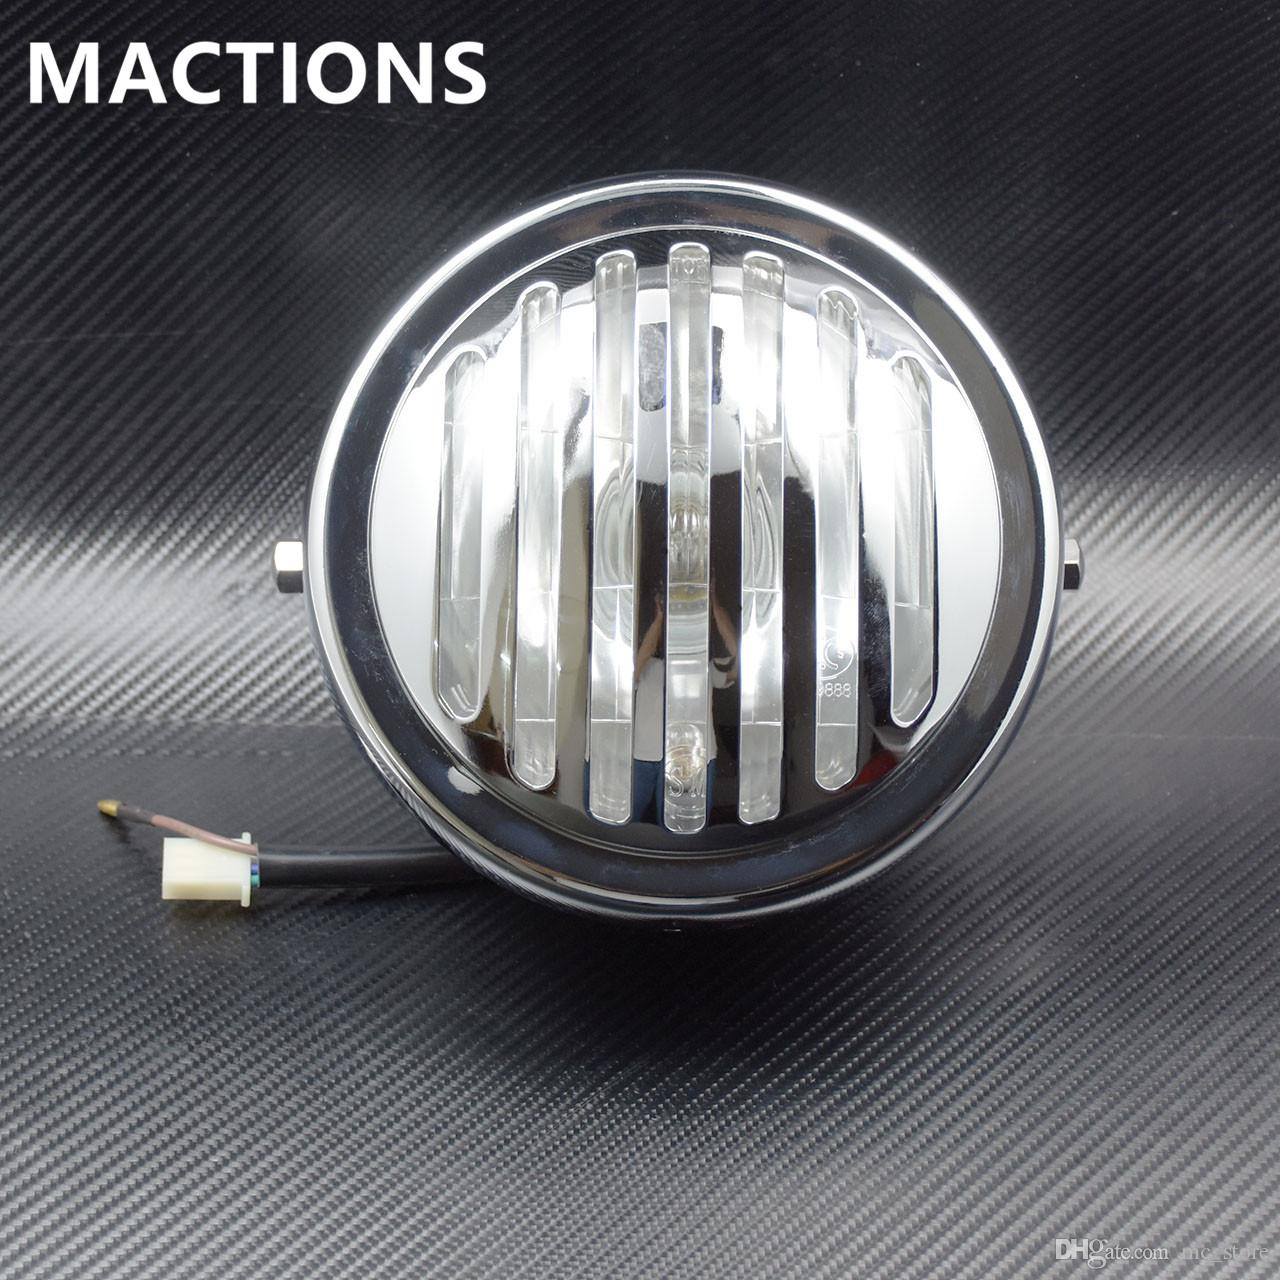 2019 7 Vintage Motorcycle Chrome All Metal Glass Grille Headlight